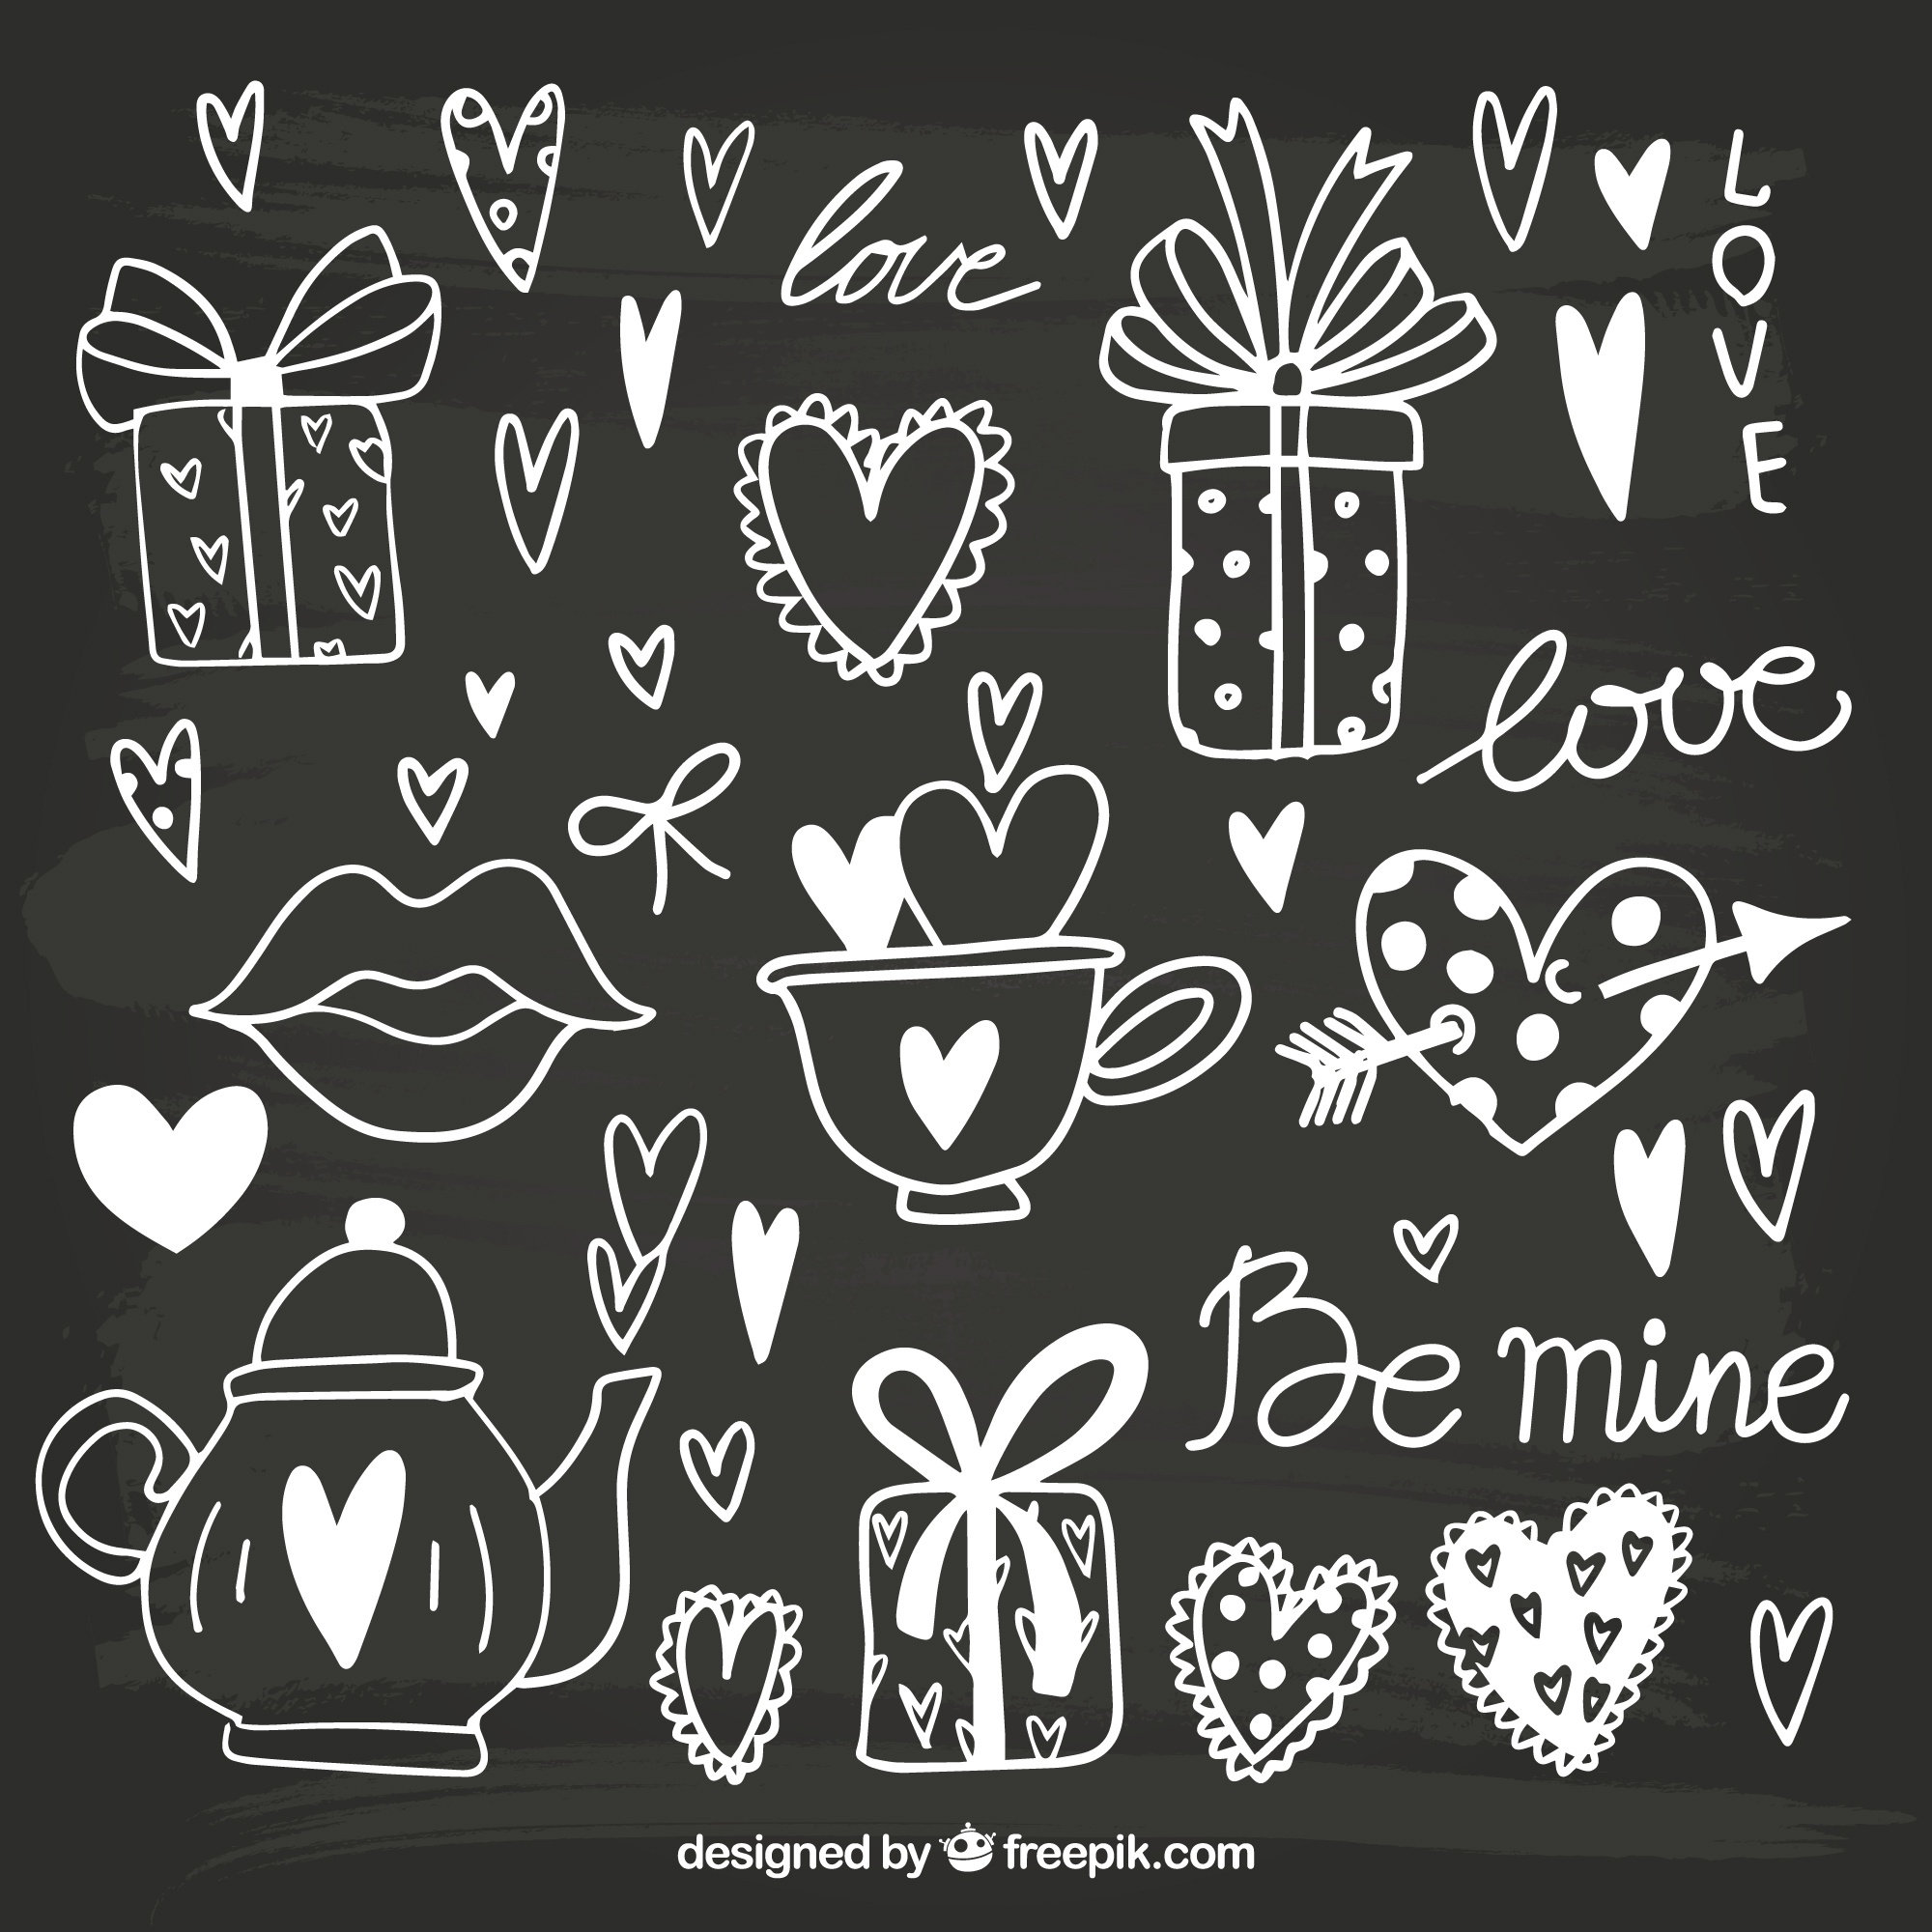 Assortment of hand-drawn valentine's day objects